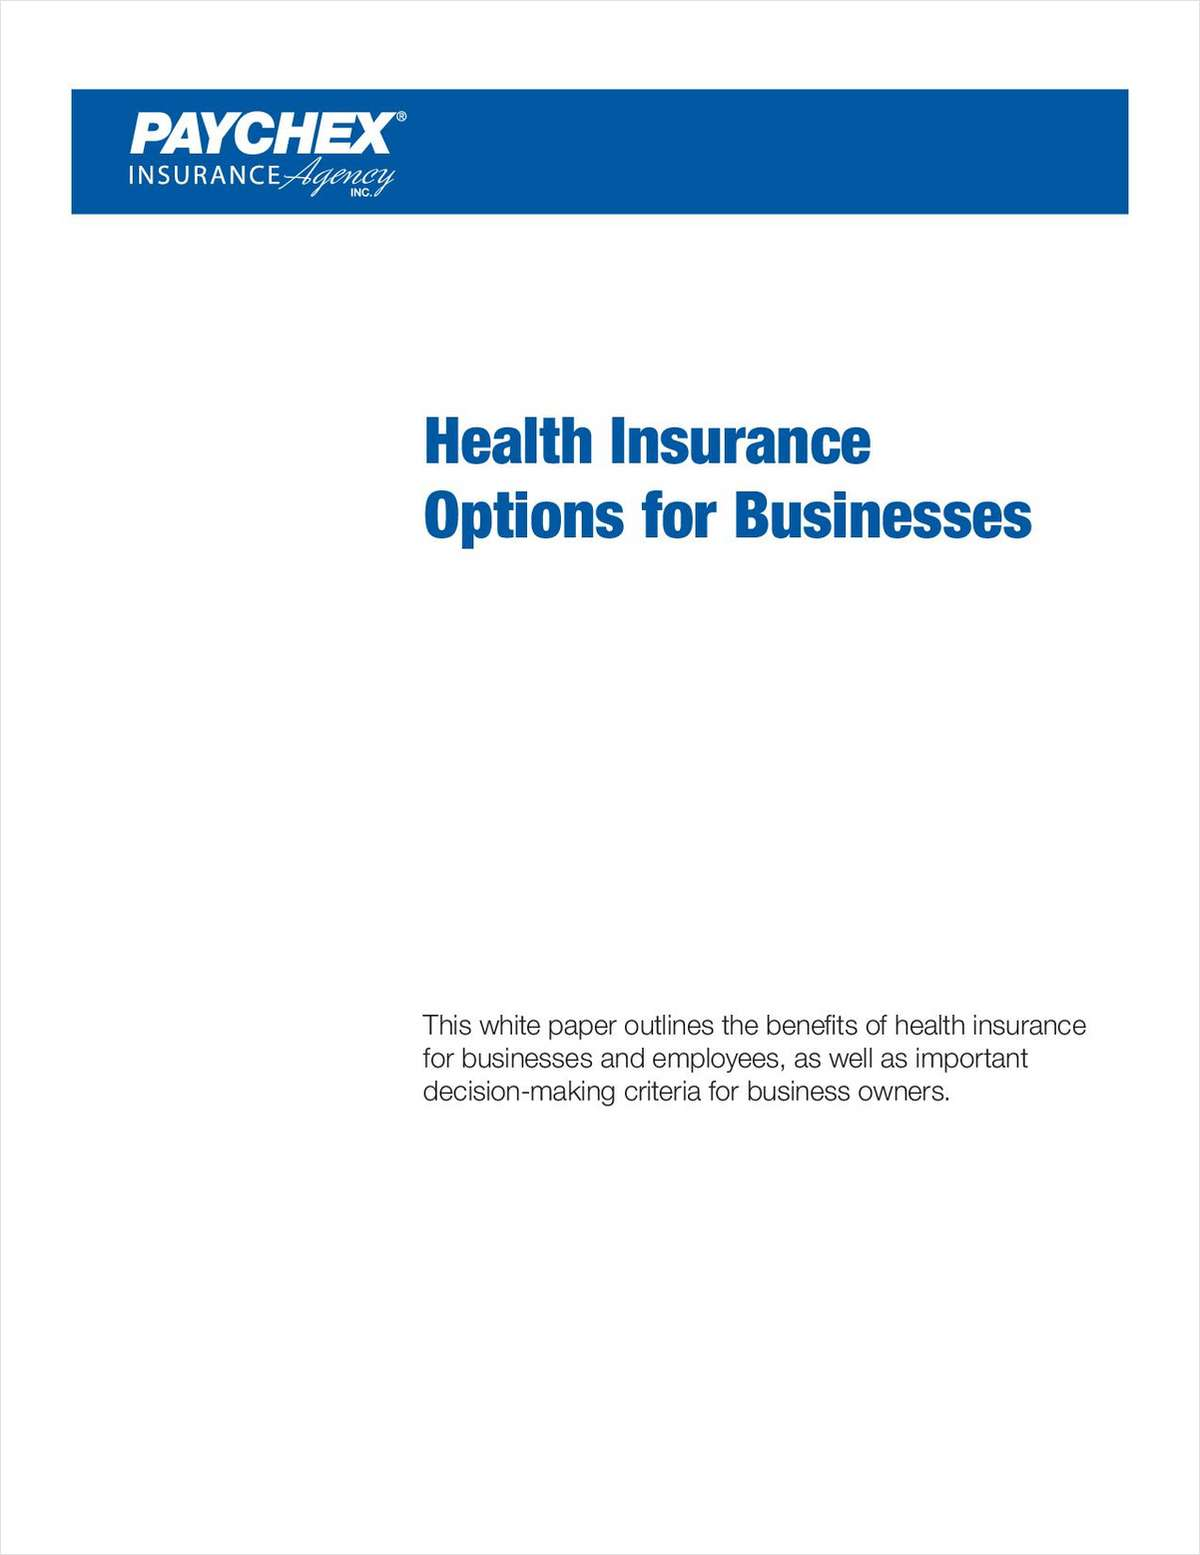 http://magz.tradepub.com/free-offer/health-insurance-options-for-businesses/w_aaaa2531?sr=hicat&_t=hicat:1079